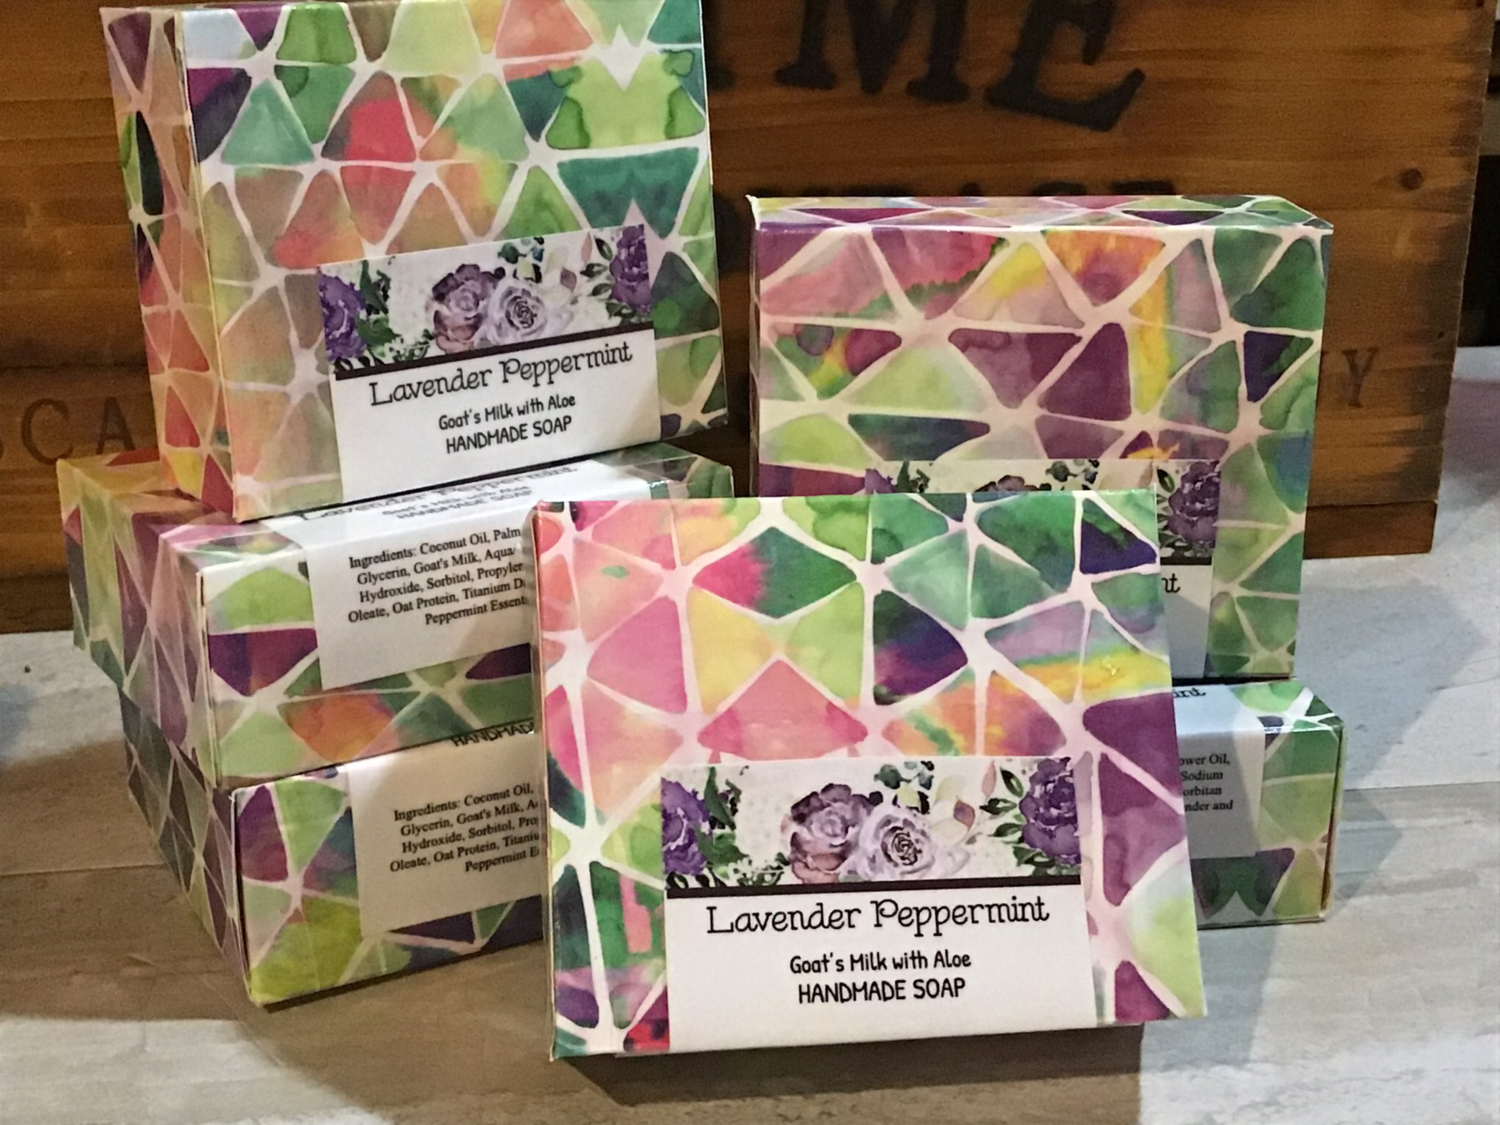 Lavender & Peppermint Goat's Milk and Aloe